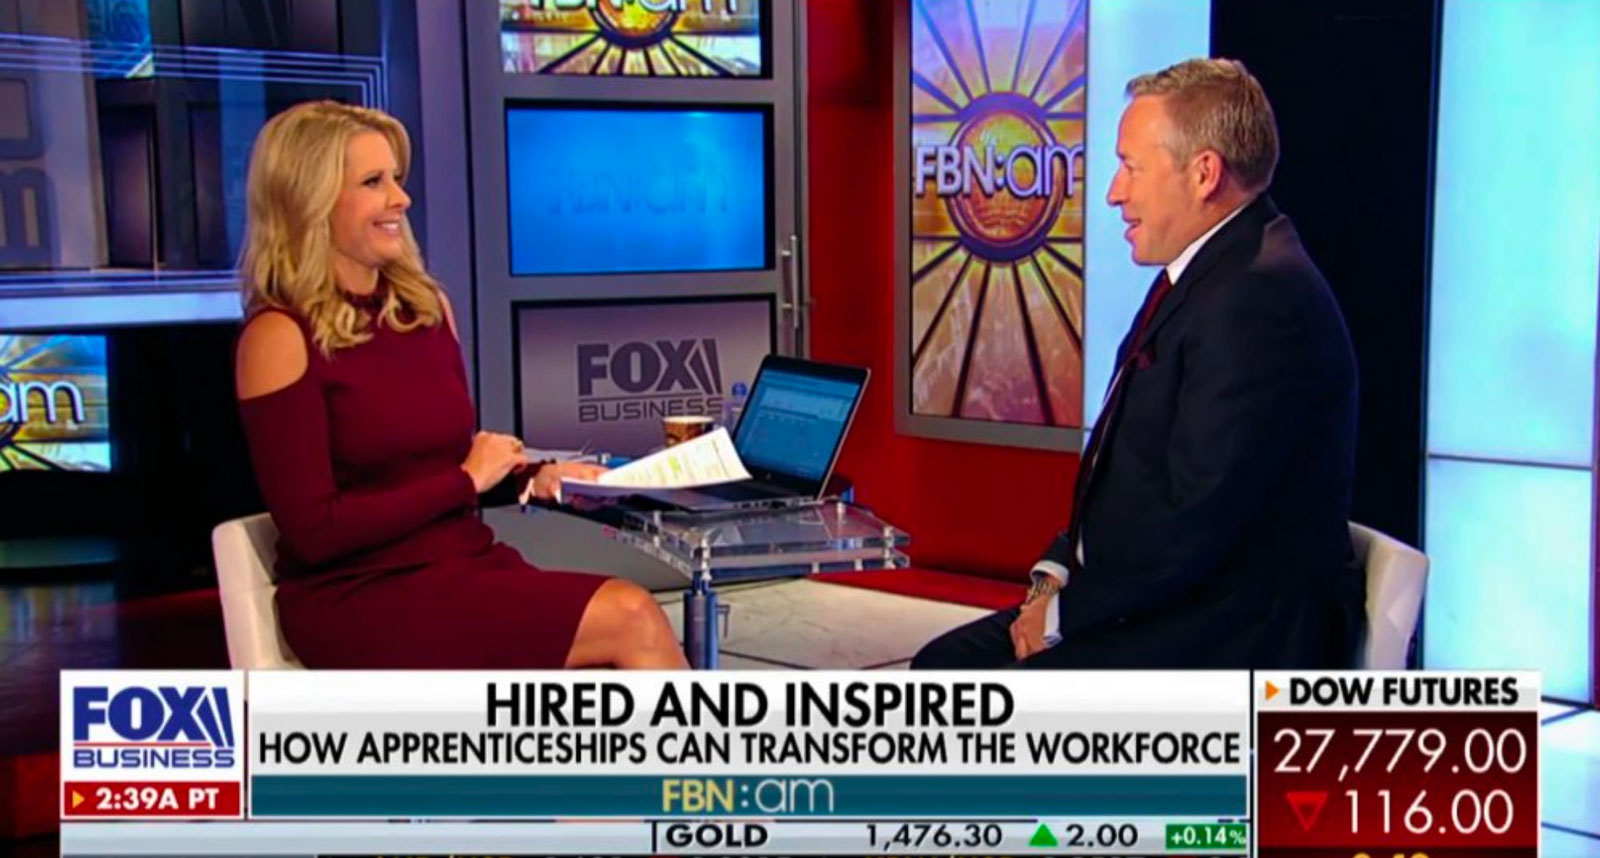 'Workers ditch college, pick up skills through apprenticeships' – Fox Business